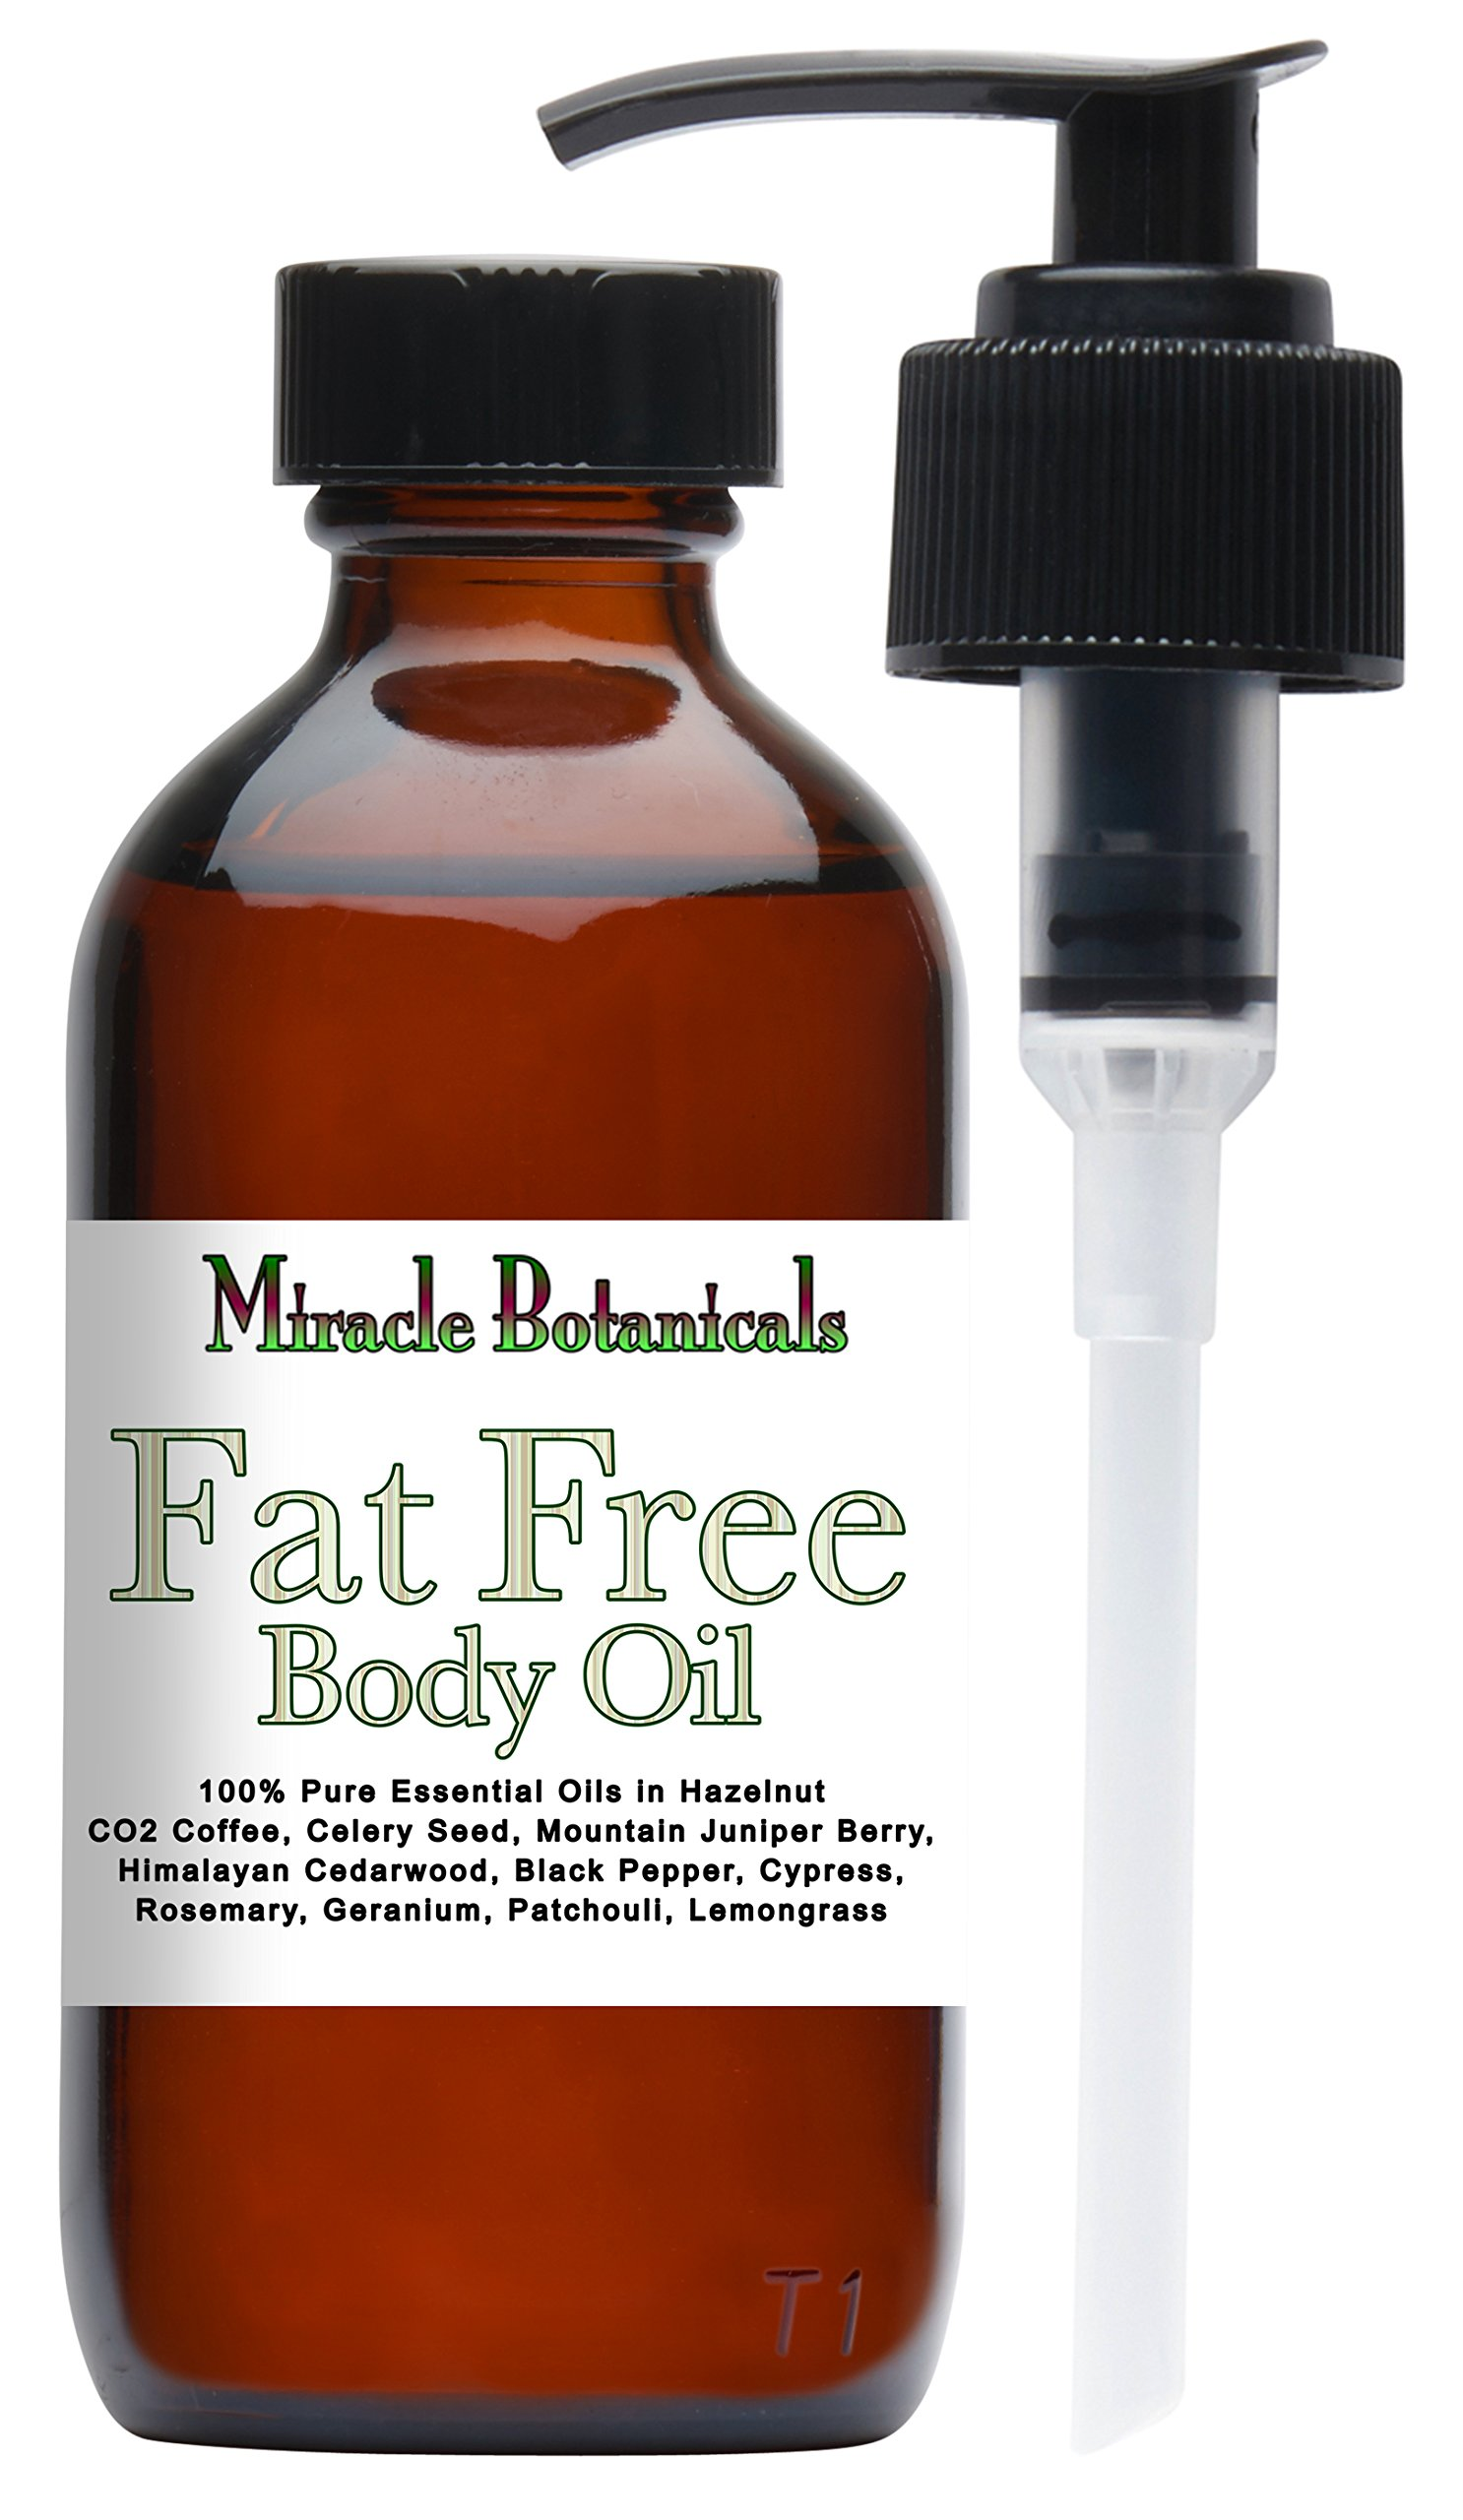 Miracle Botanicals Fat Free Body Oil - Cellulite Reducing Formula - 100% Therapeutic Grade - Pure Essential Oils and Carrier Oils - 4oz by Miracle Botanicals